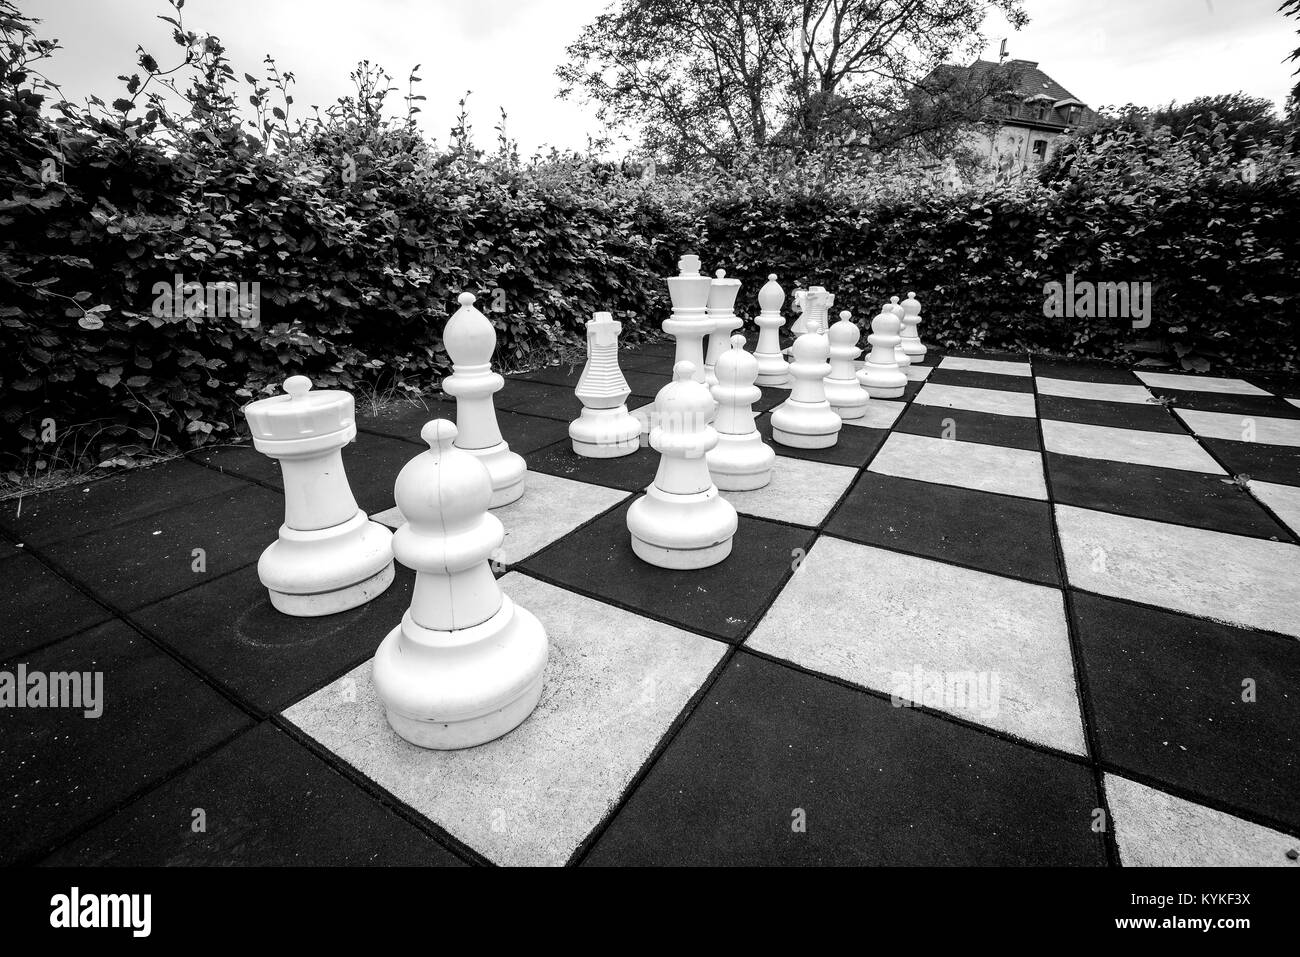 Game of chess with large pieces in an outdoor garden in monchrome colors - Stock Image